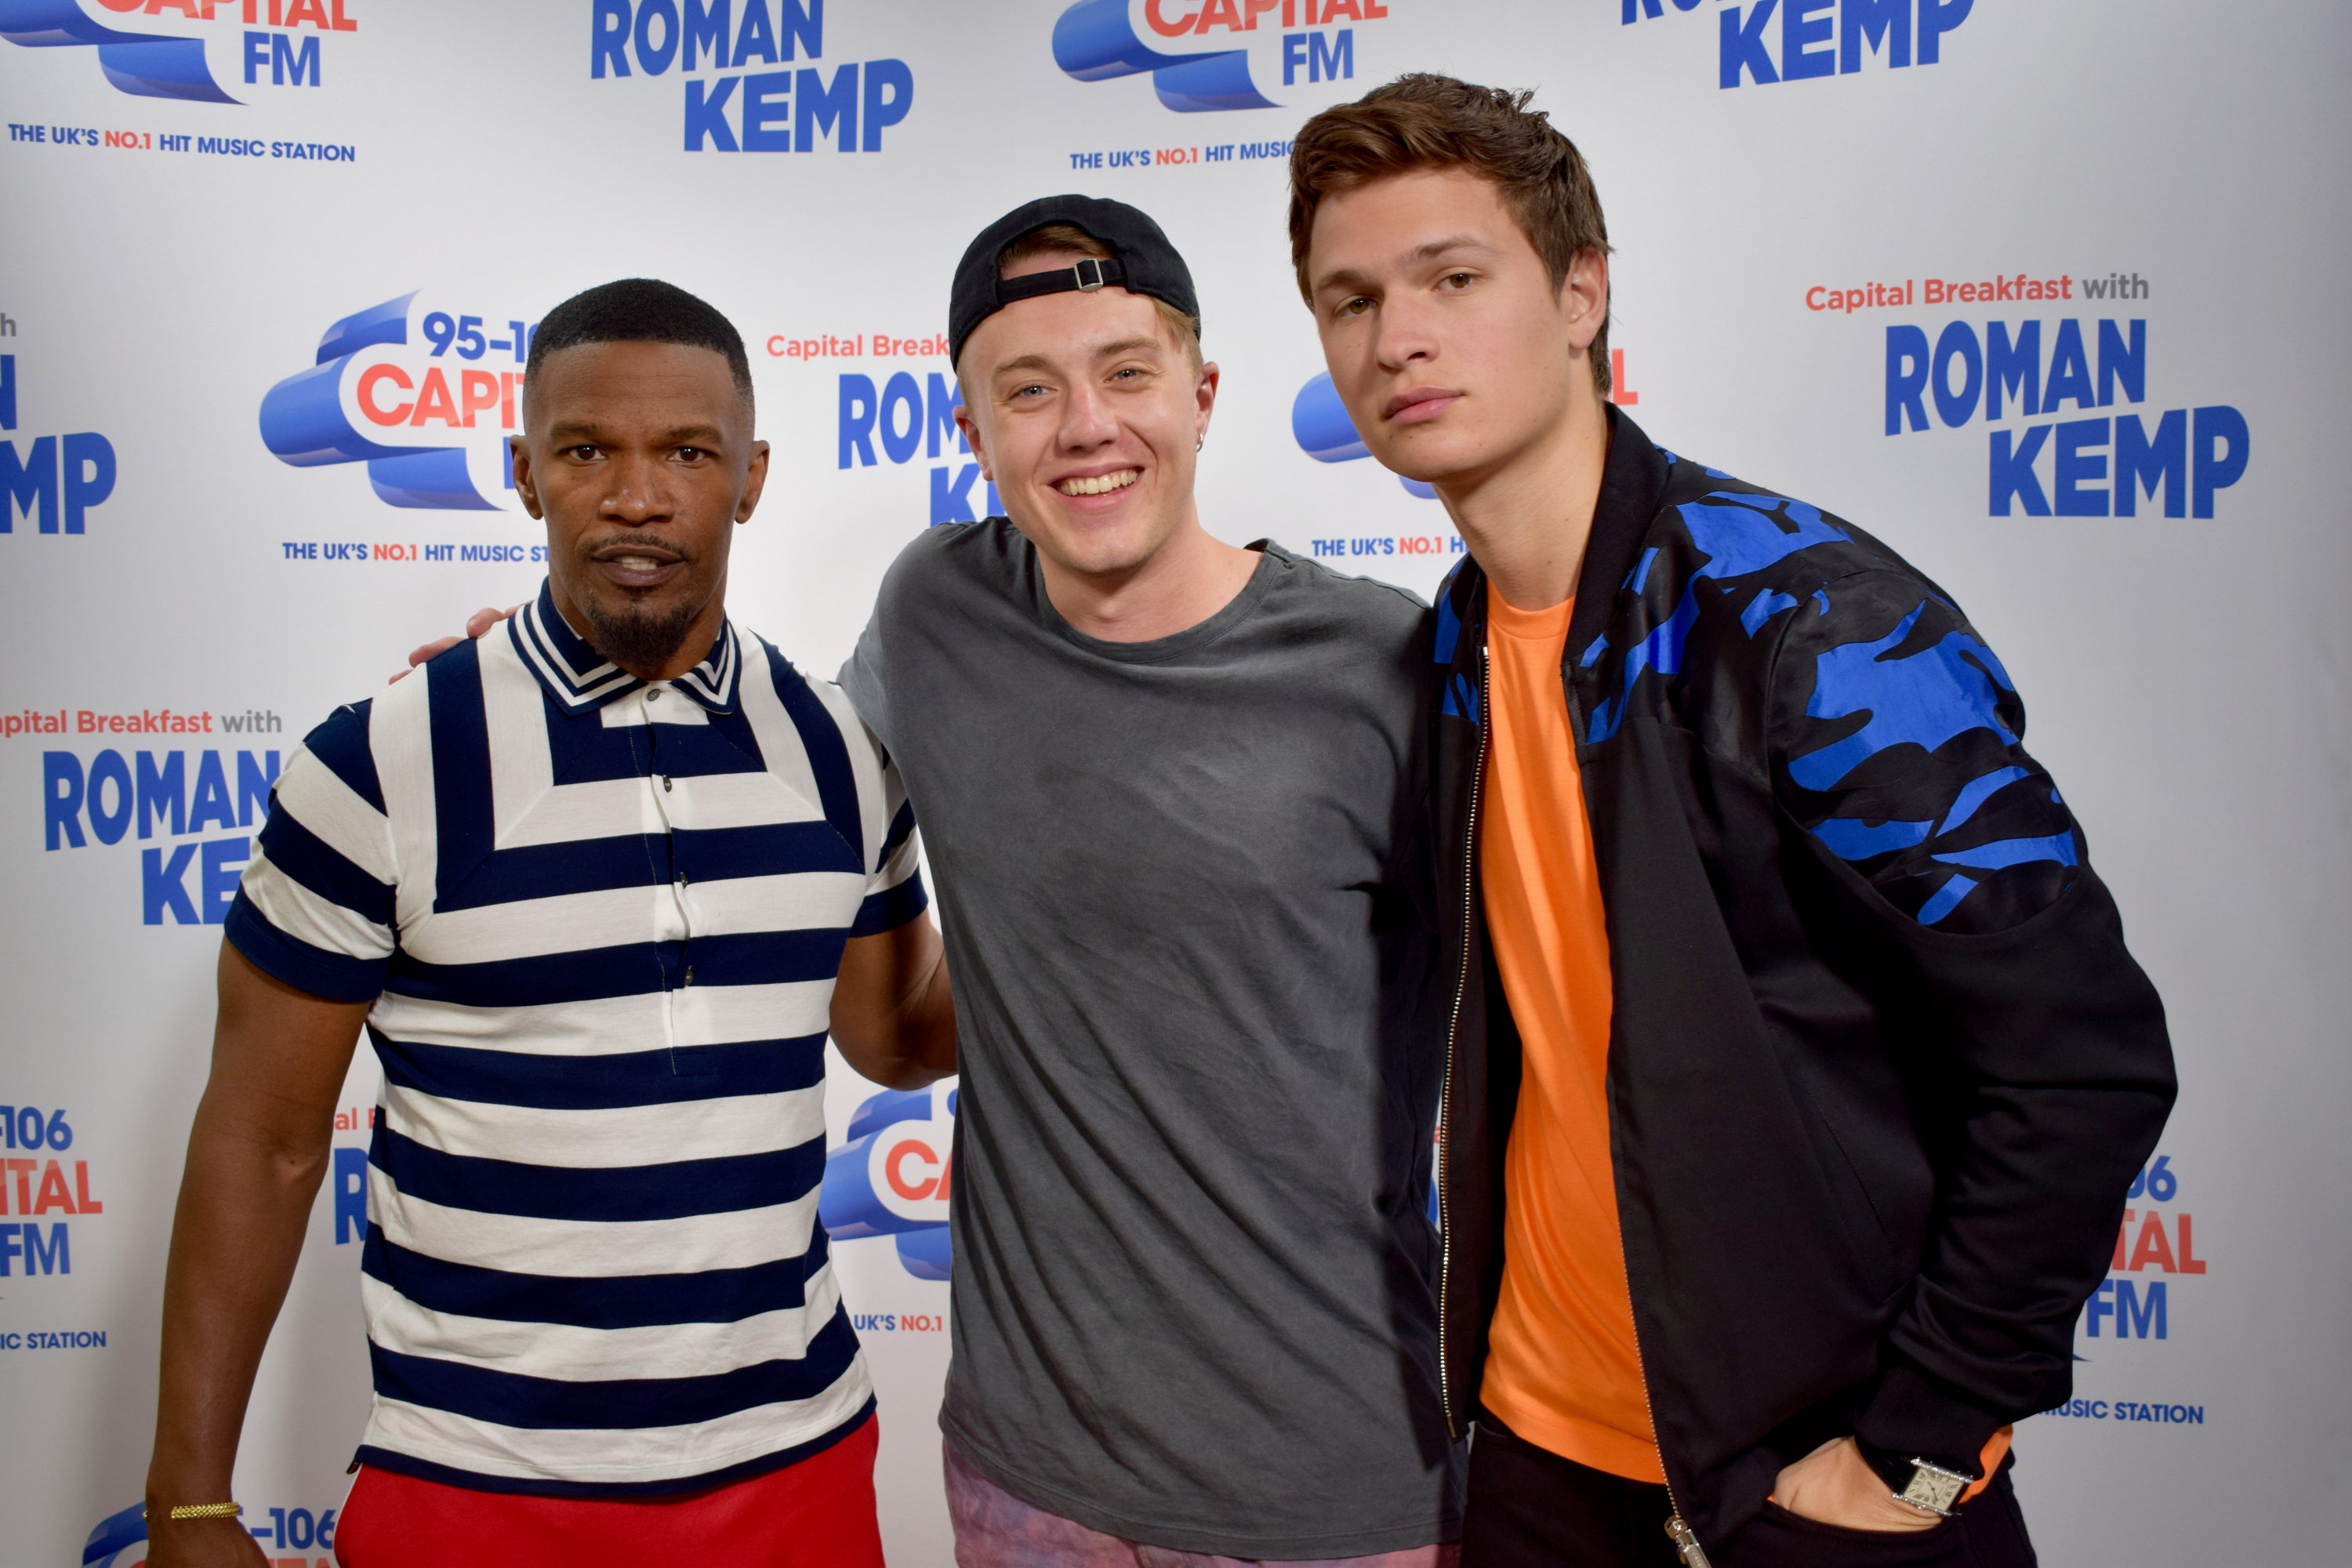 Jamie Foxx and Ansel Elgort with Roman Kemp